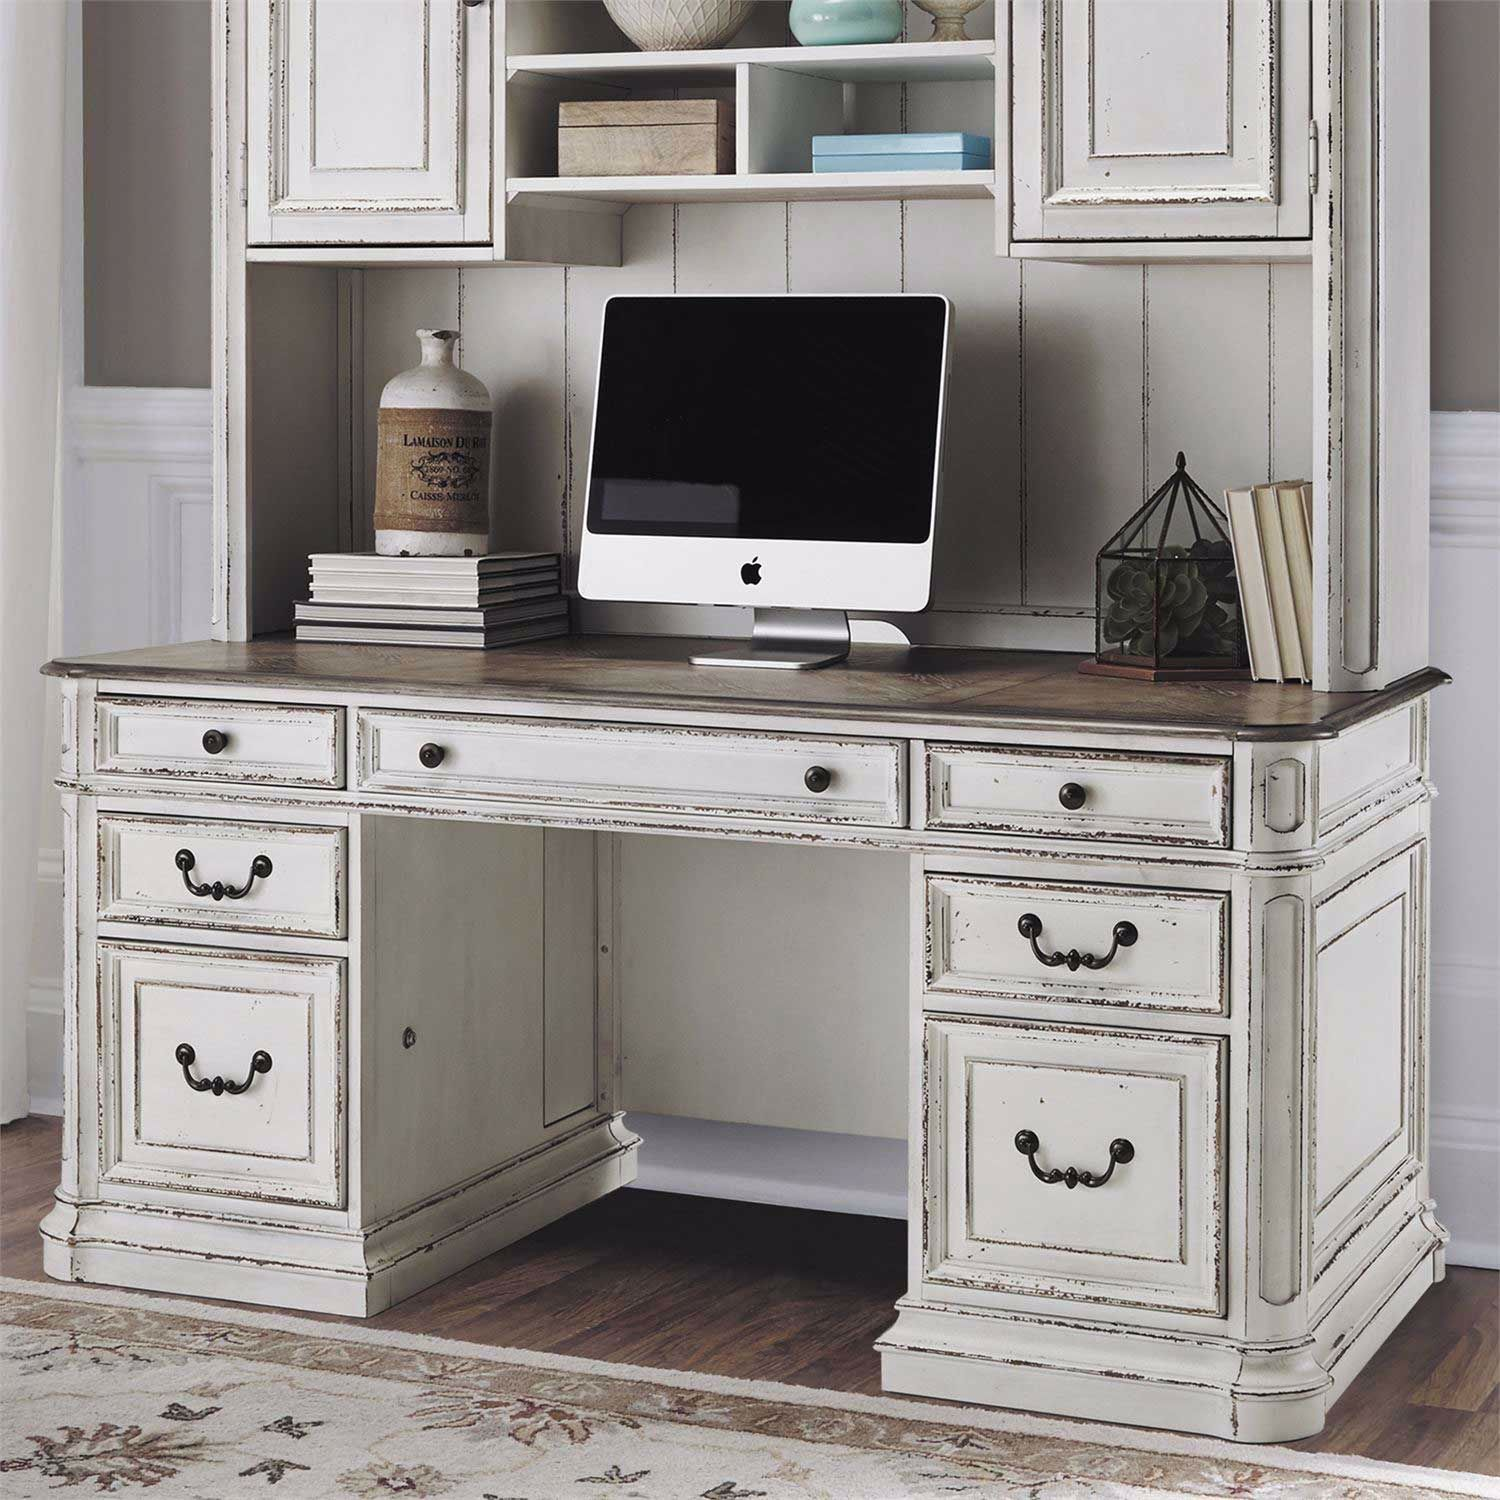 Picture of Magnolia Junior Credenza